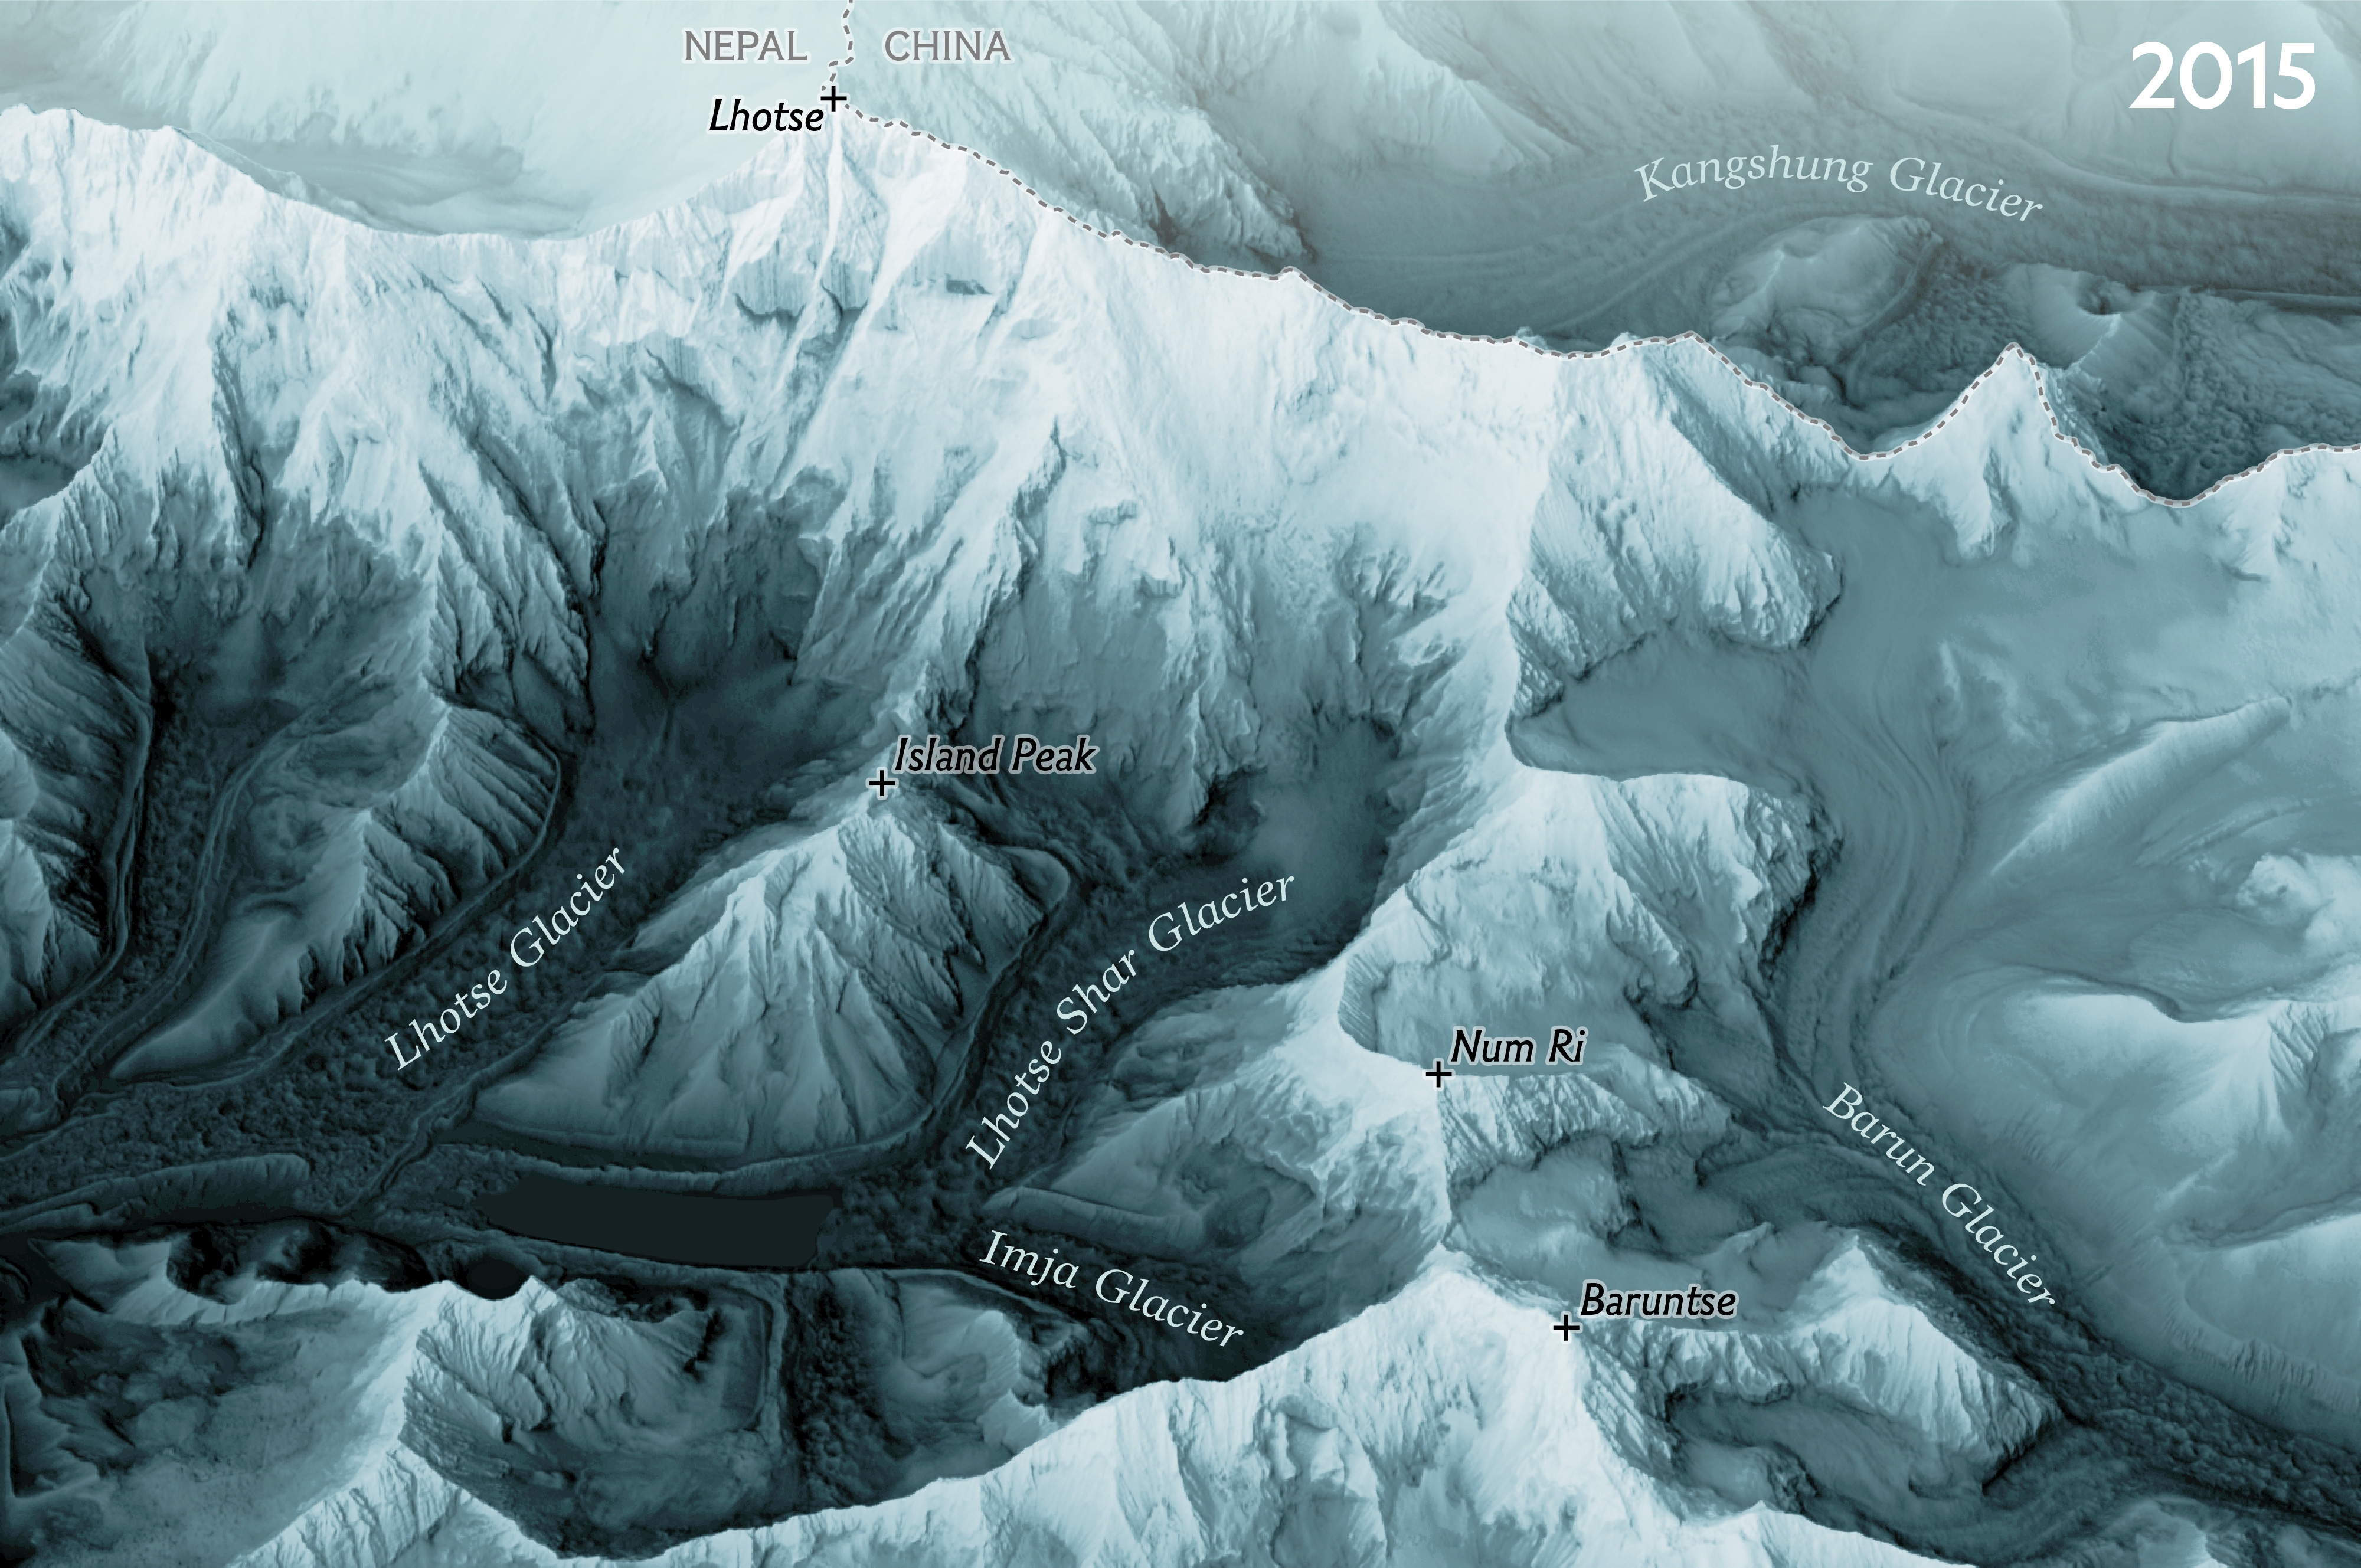 3D view of Everest region, facing North